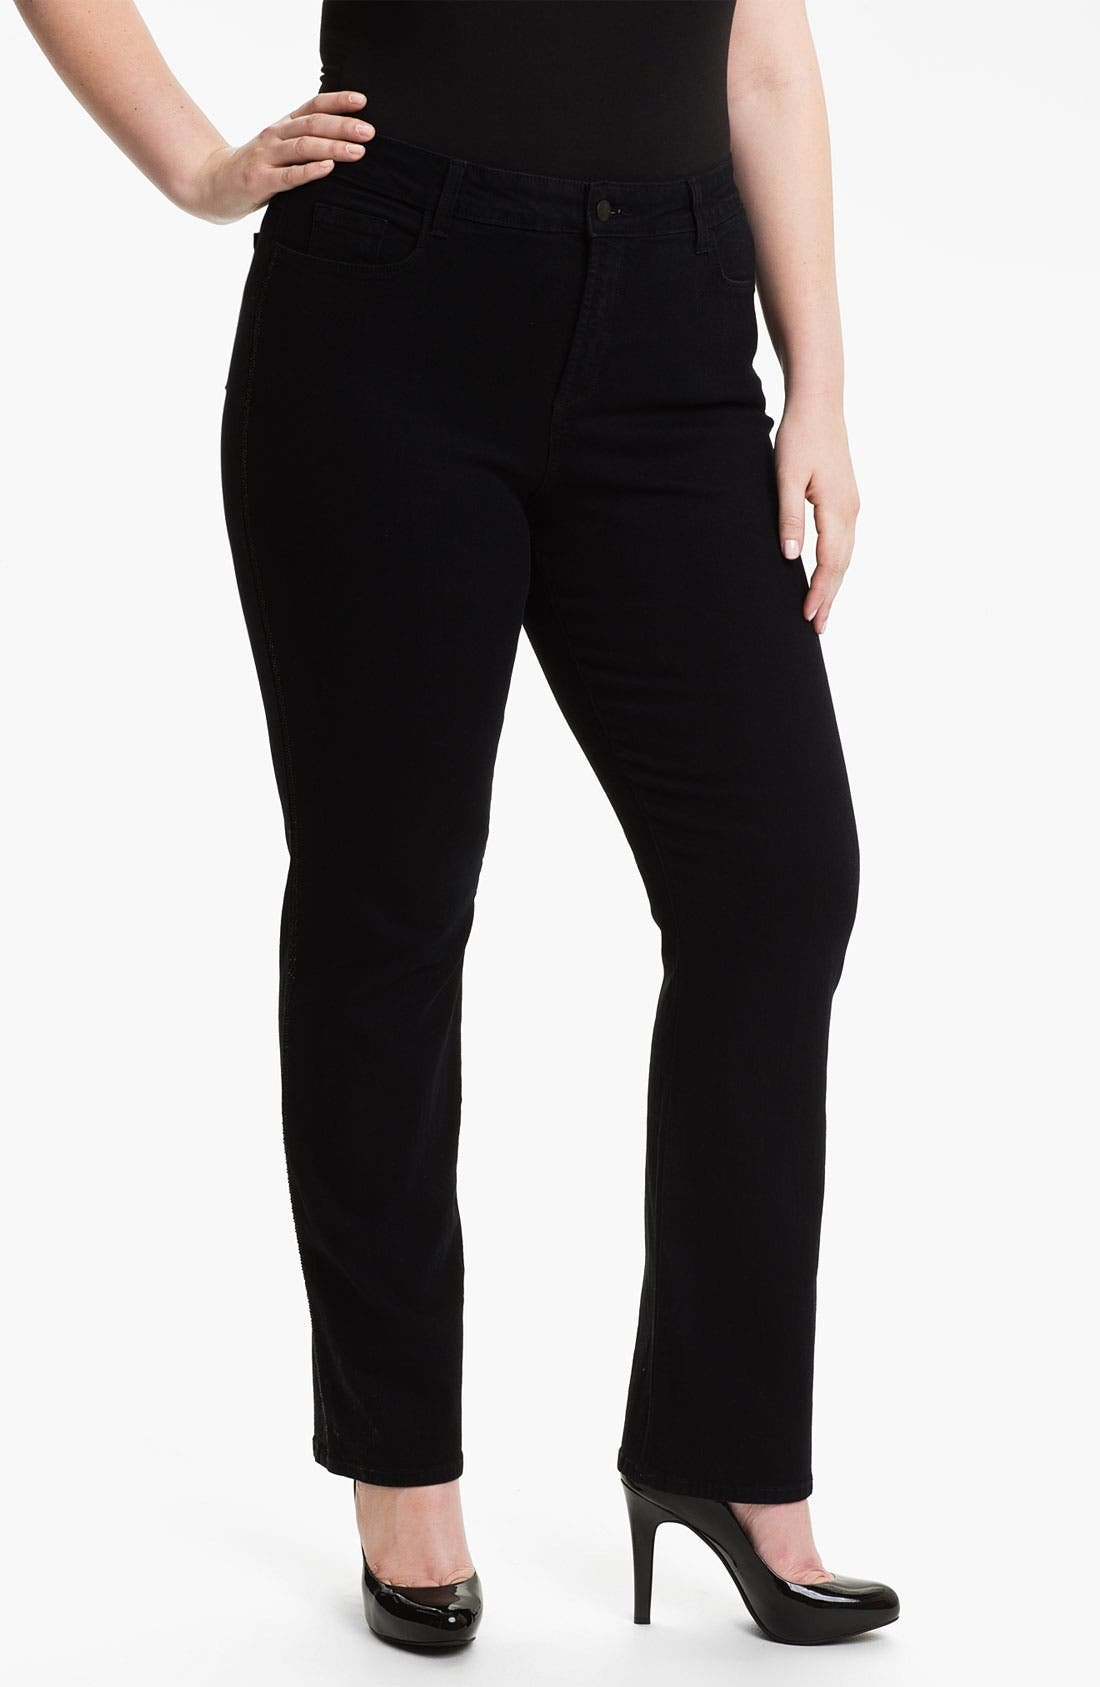 Alternate Image 1 Selected - NYDJ 'Marilyn' Tuxedo Stripe Straight Leg Jeans (Plus)